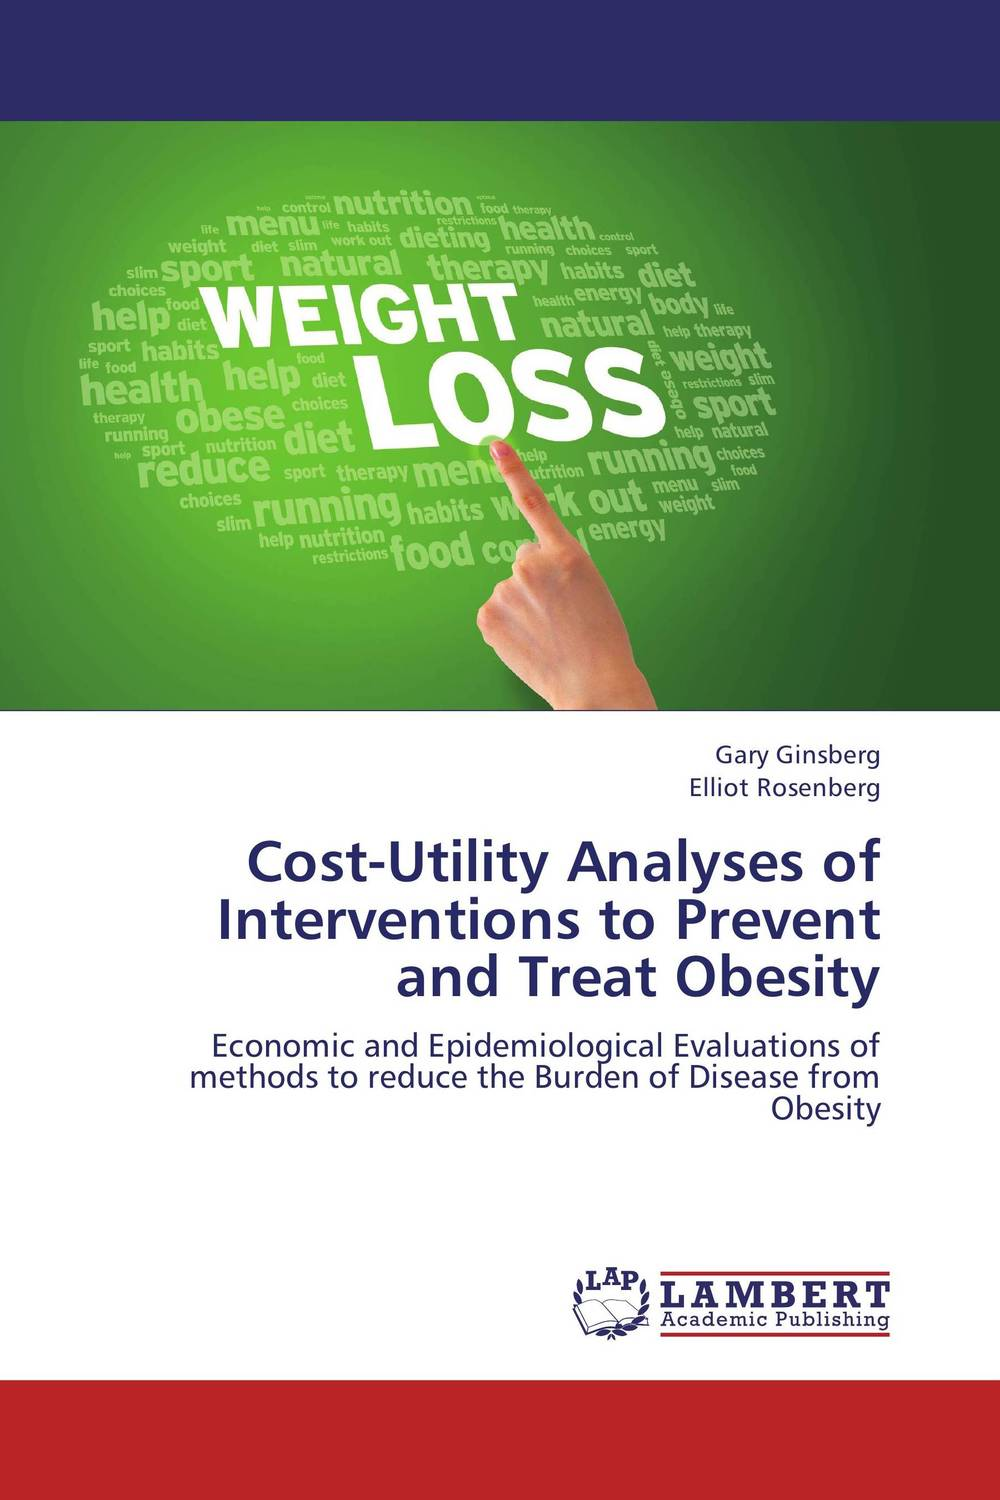 Cost-Utility Analyses of Interventions to Prevent and Treat Obesity medicinal plants to treat obesity